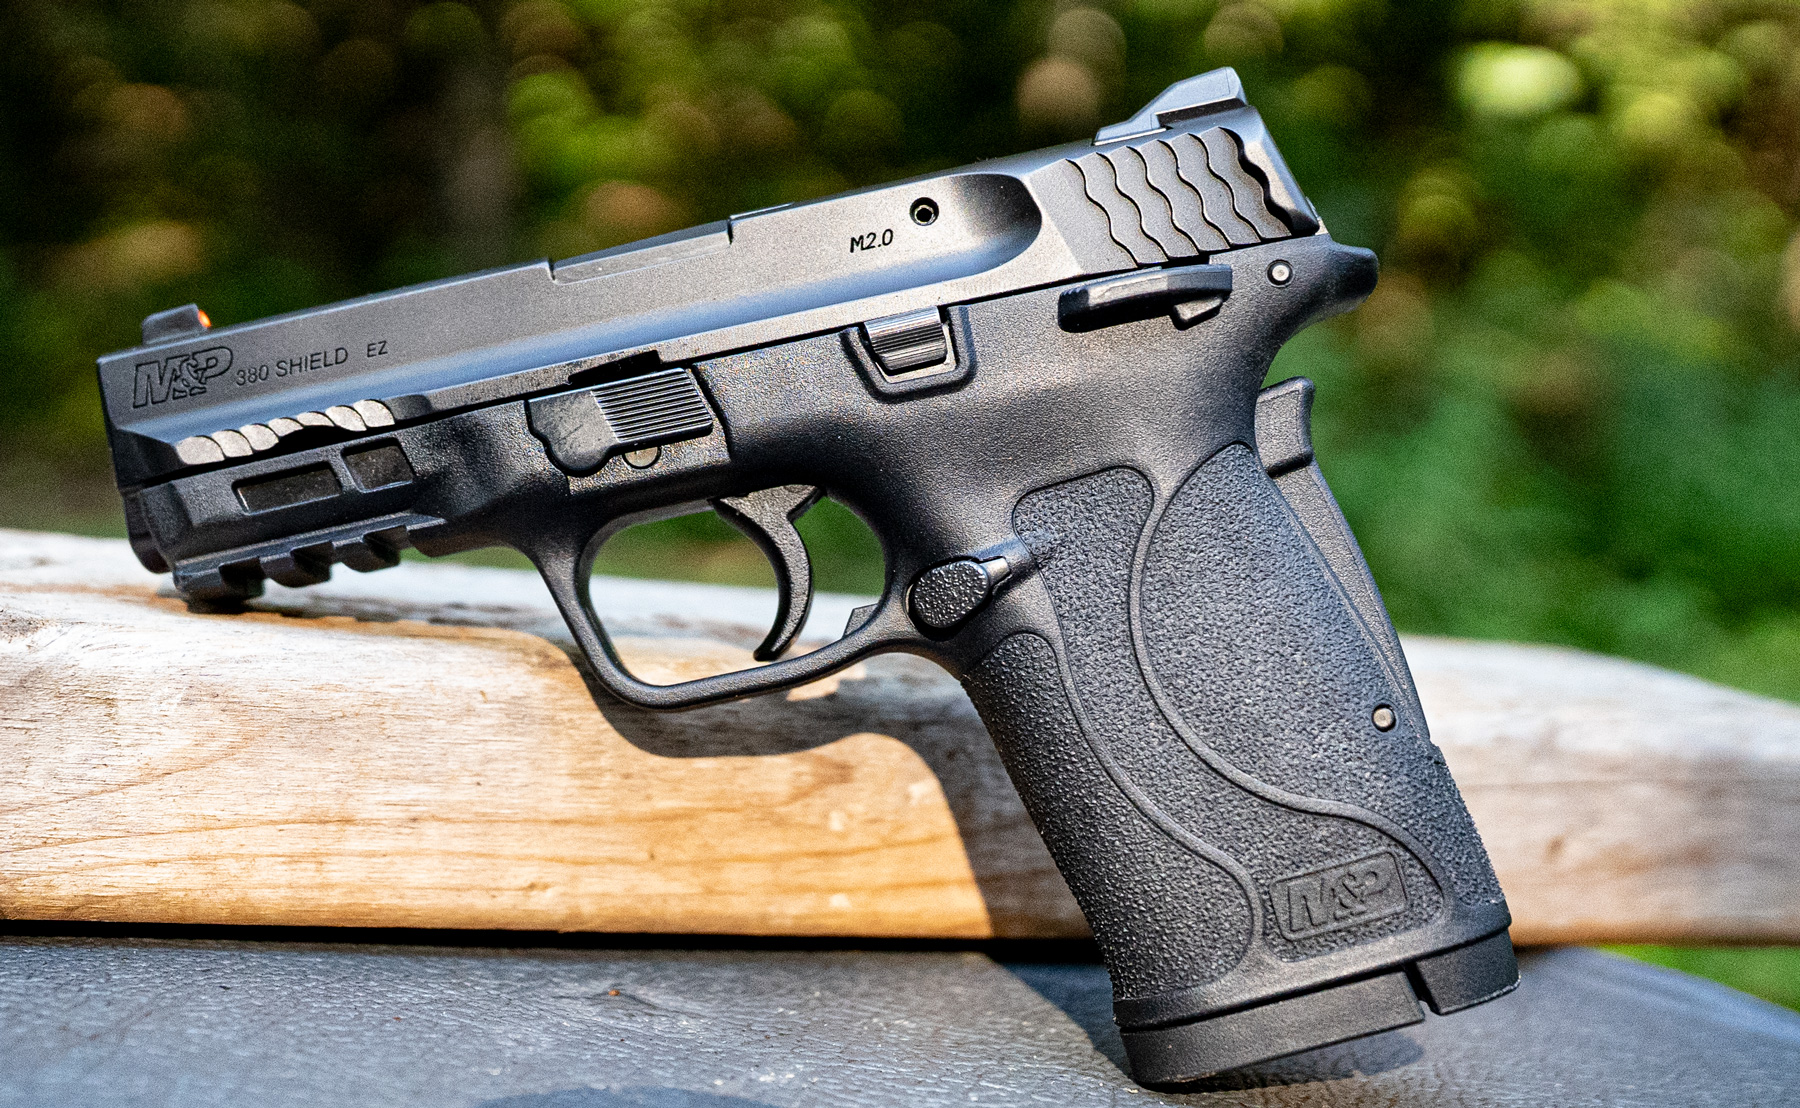 Smith & Wesson's Shield 380 EZ - one of the best concealed carry guns available